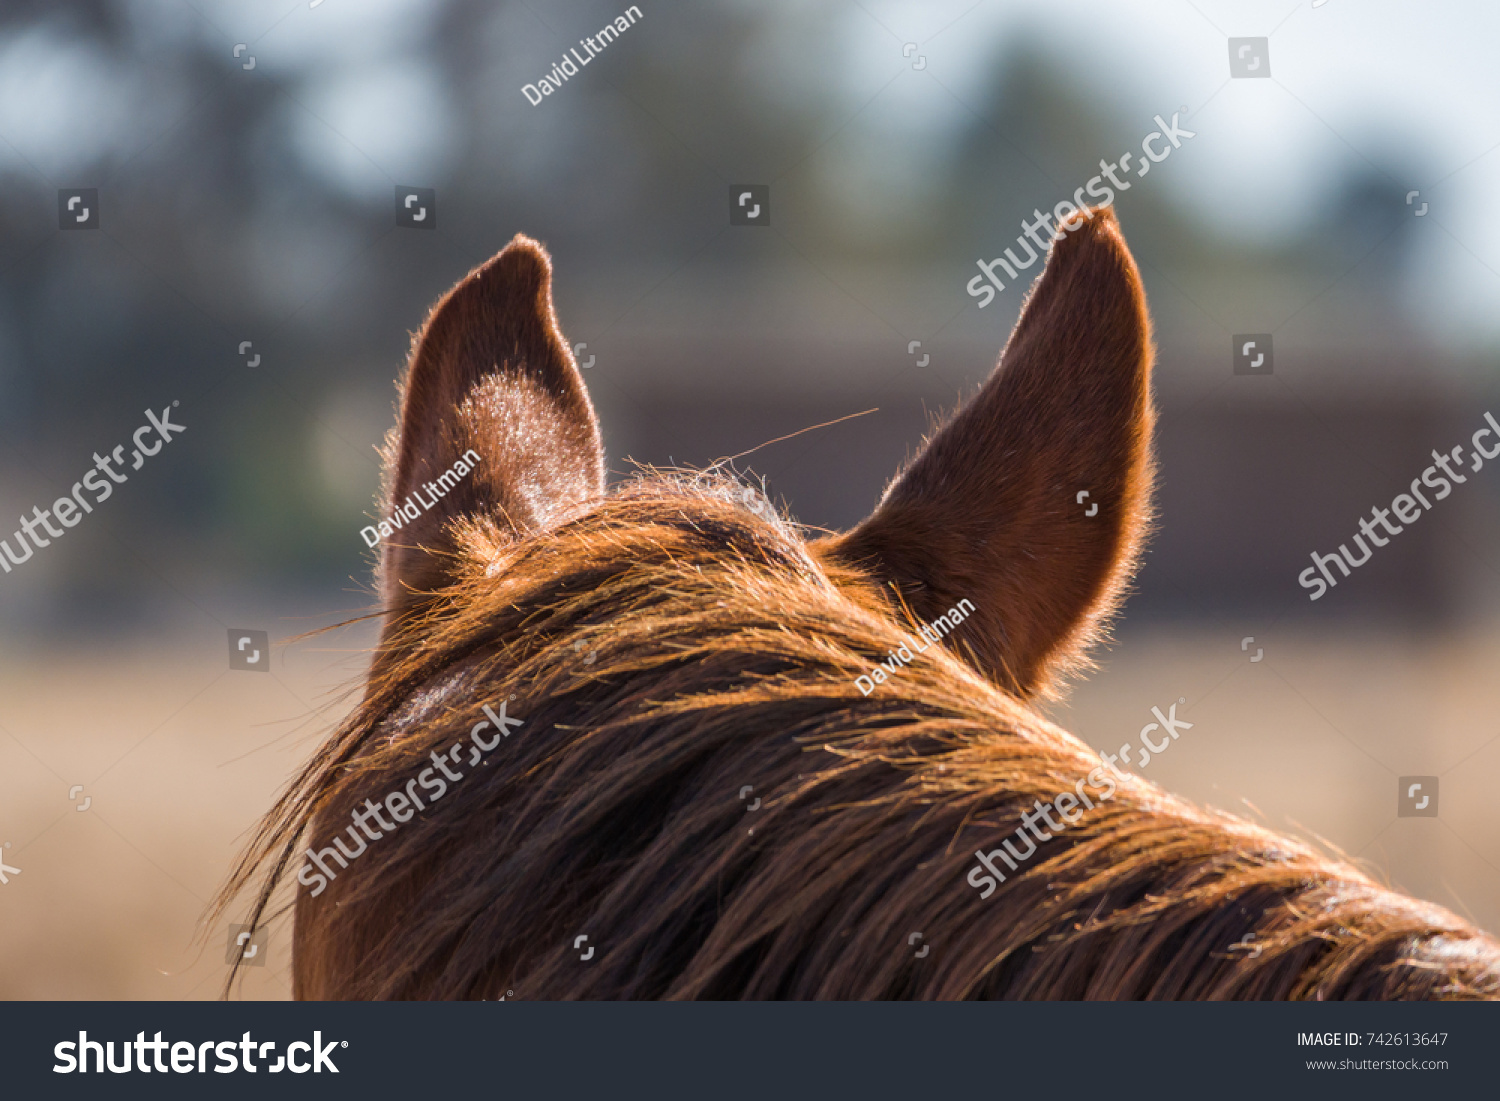 View of a horse from behind with close up of mane and ears.